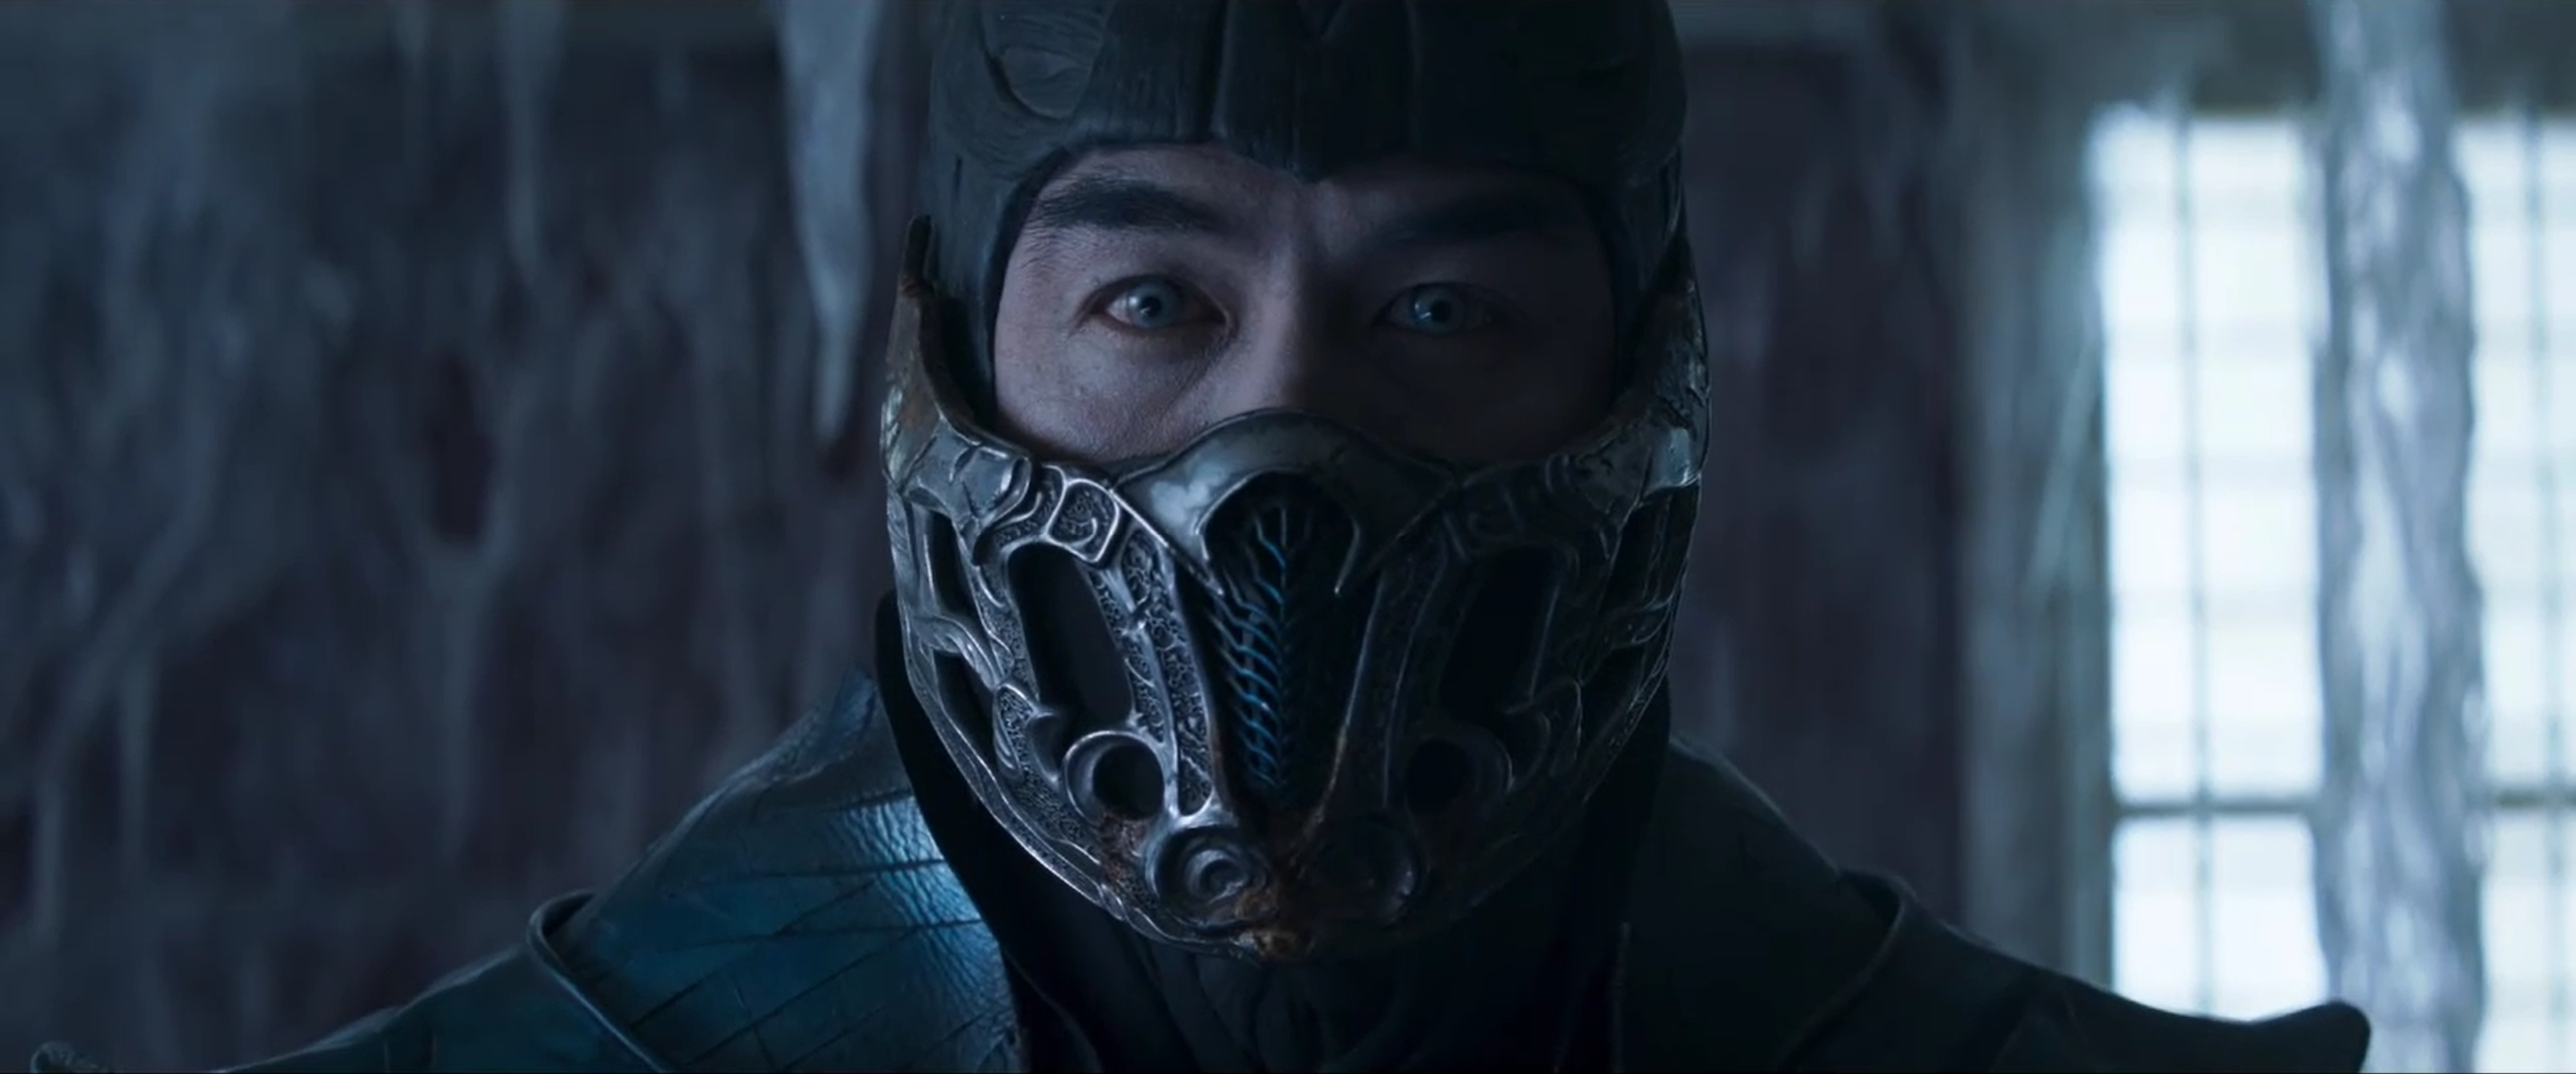 Sub-Zero-Mortal-Kombat-2021-Movie-trailer | Atomix